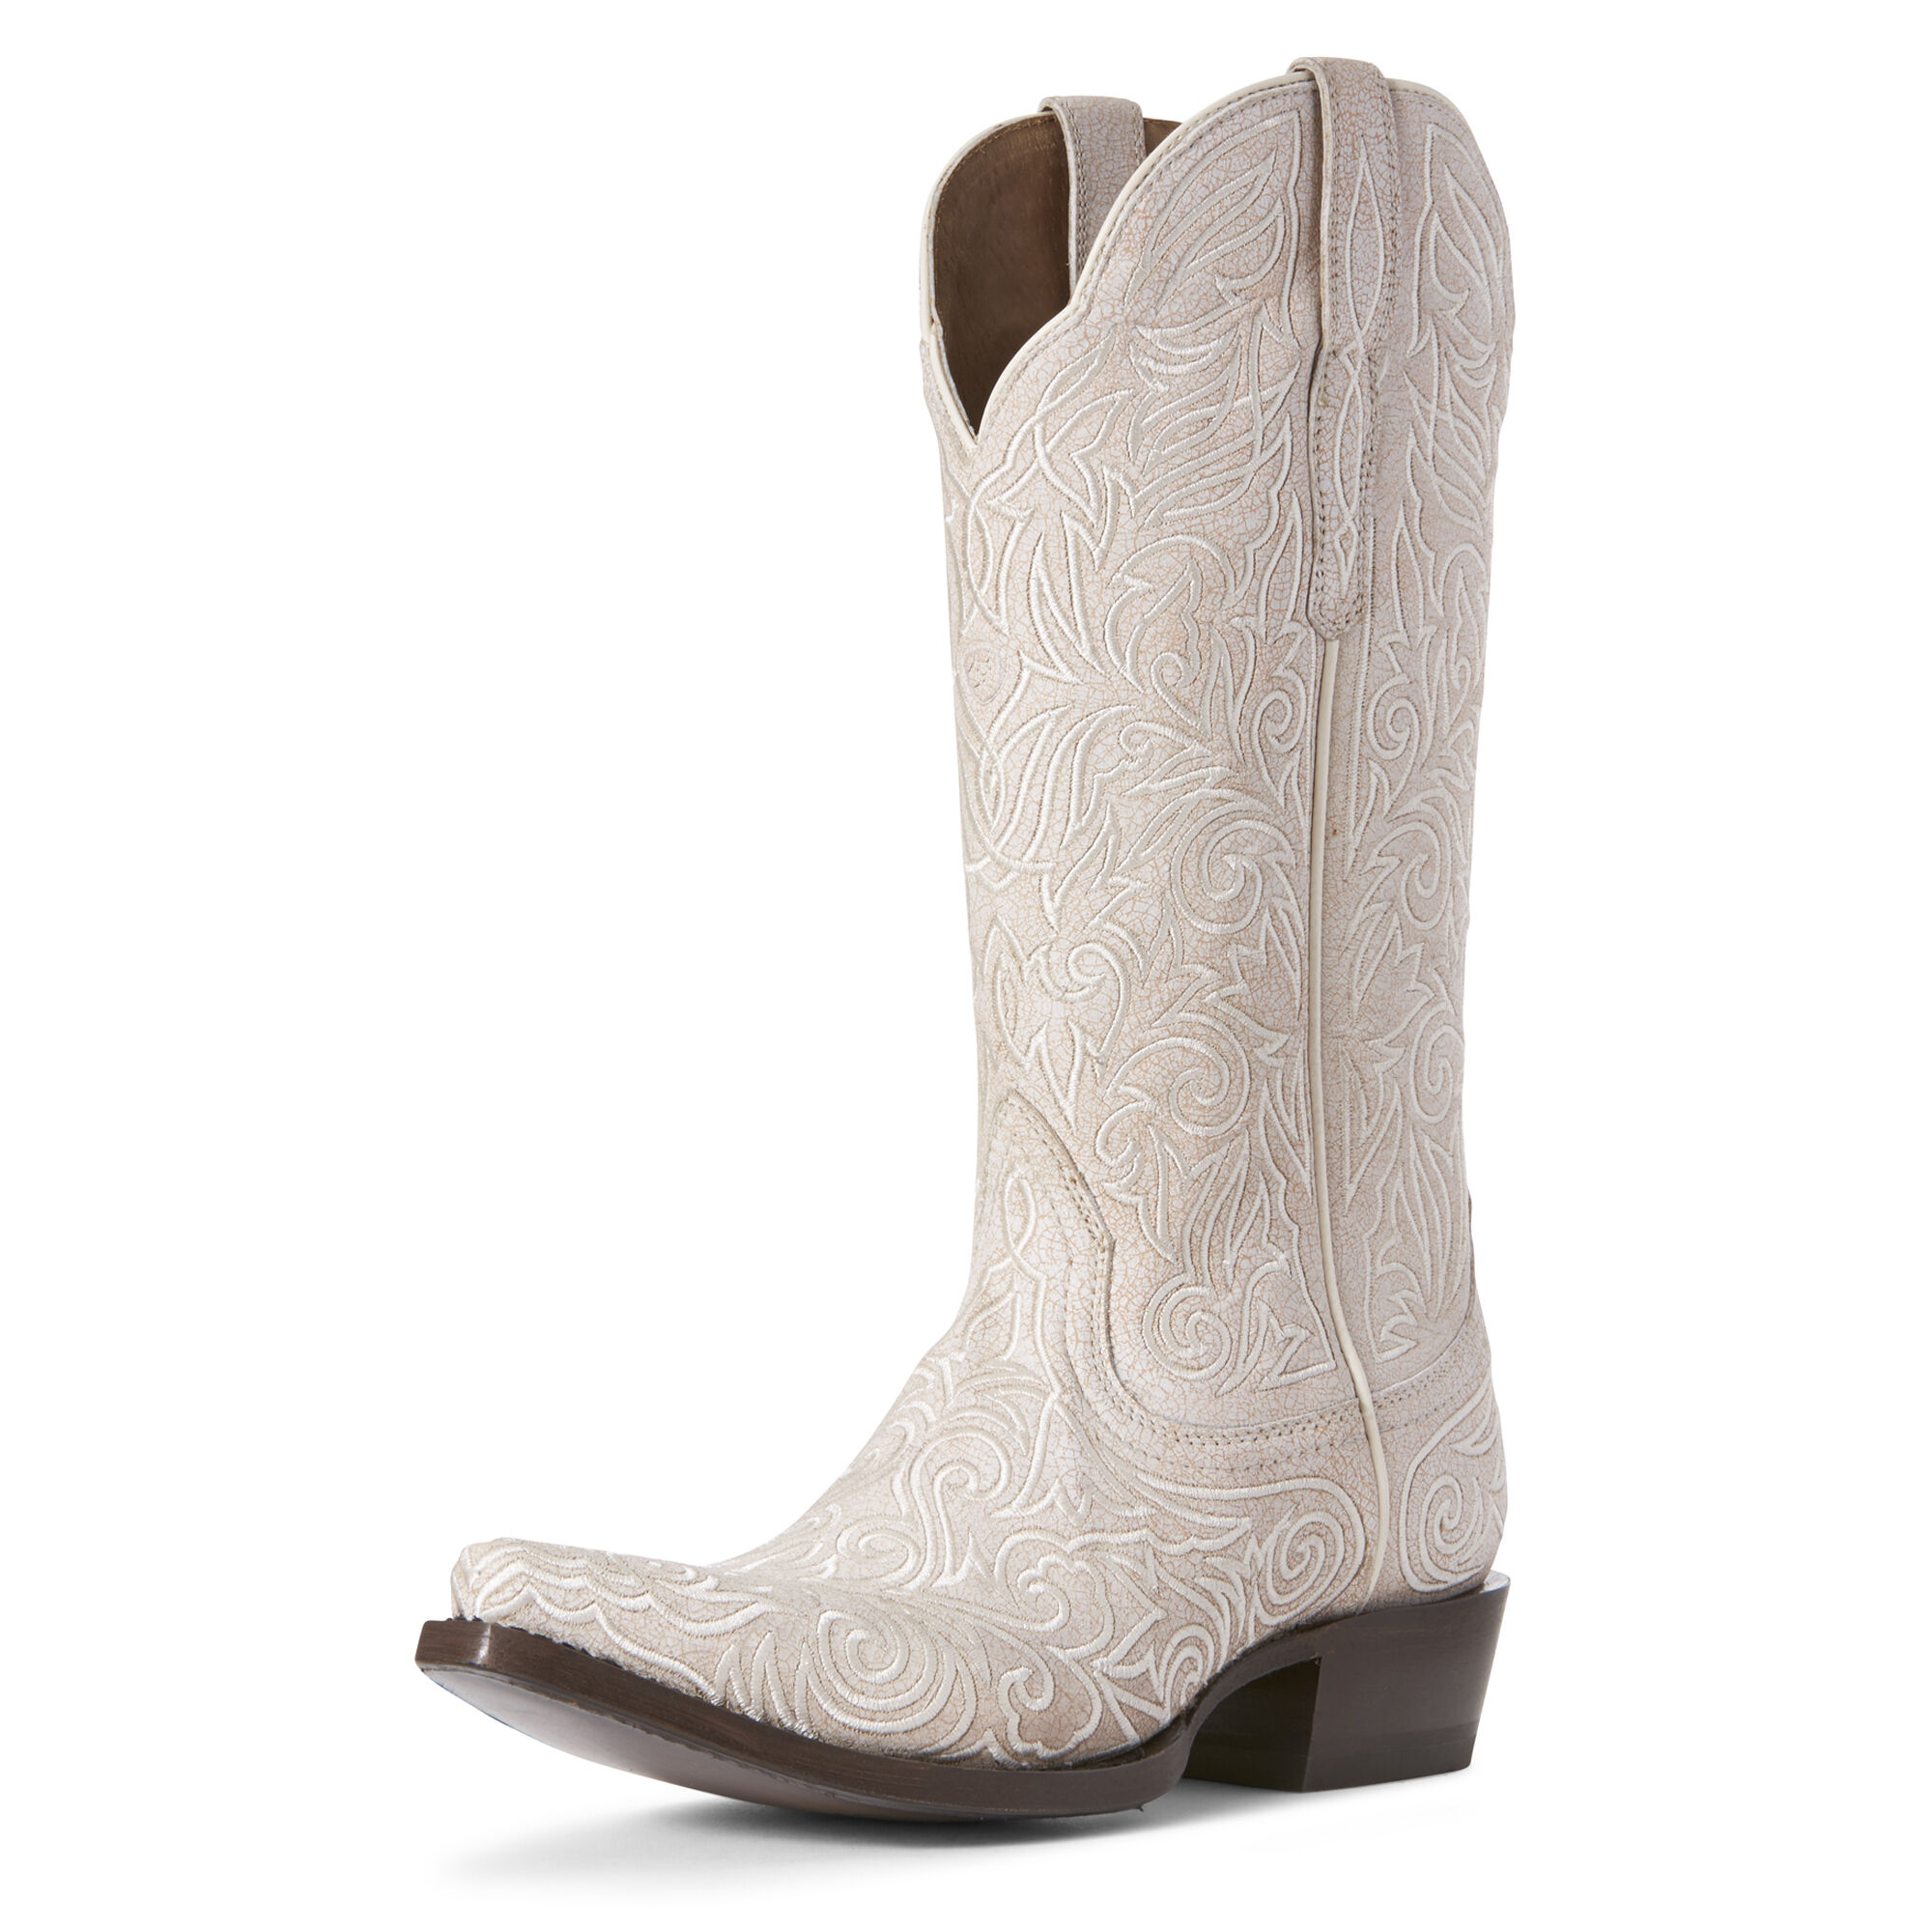 Women's Sterling Western Boots in Crackled White by Ariat